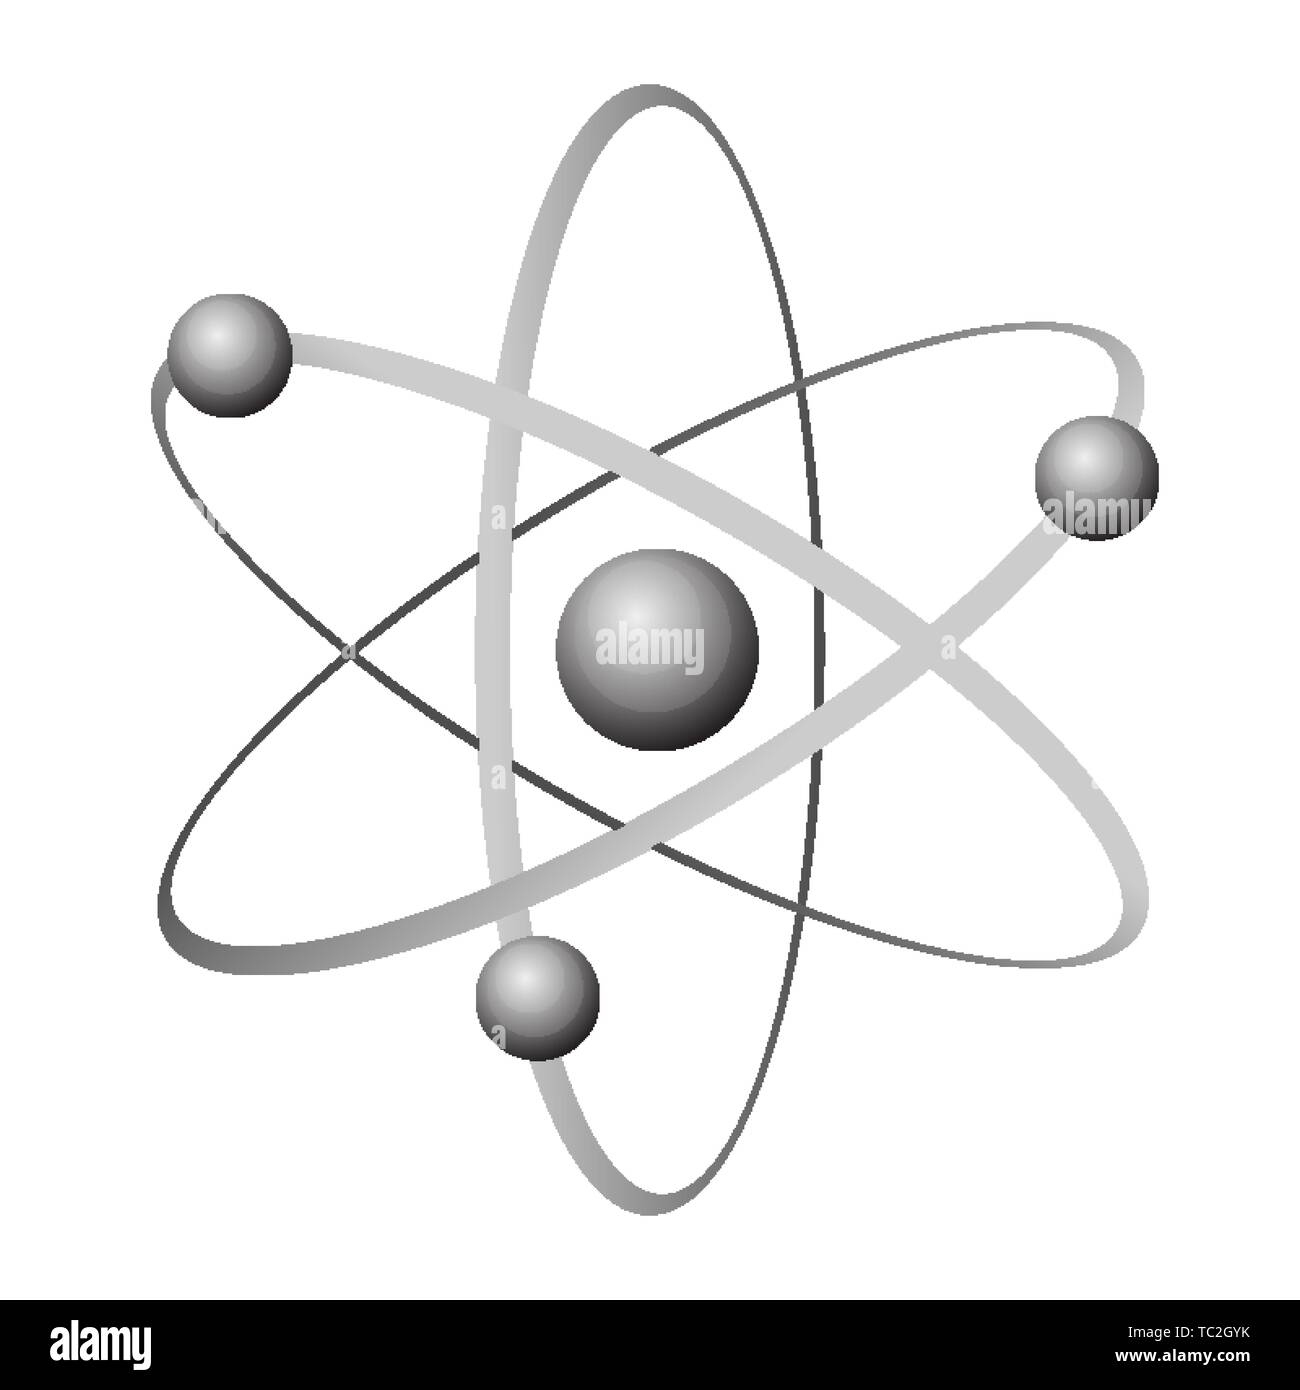 Atom grey icon with circles and balls inside and on lines isolated on white. Vector illustration of the smallest constituent unit of ordinary matter t - Stock Vector